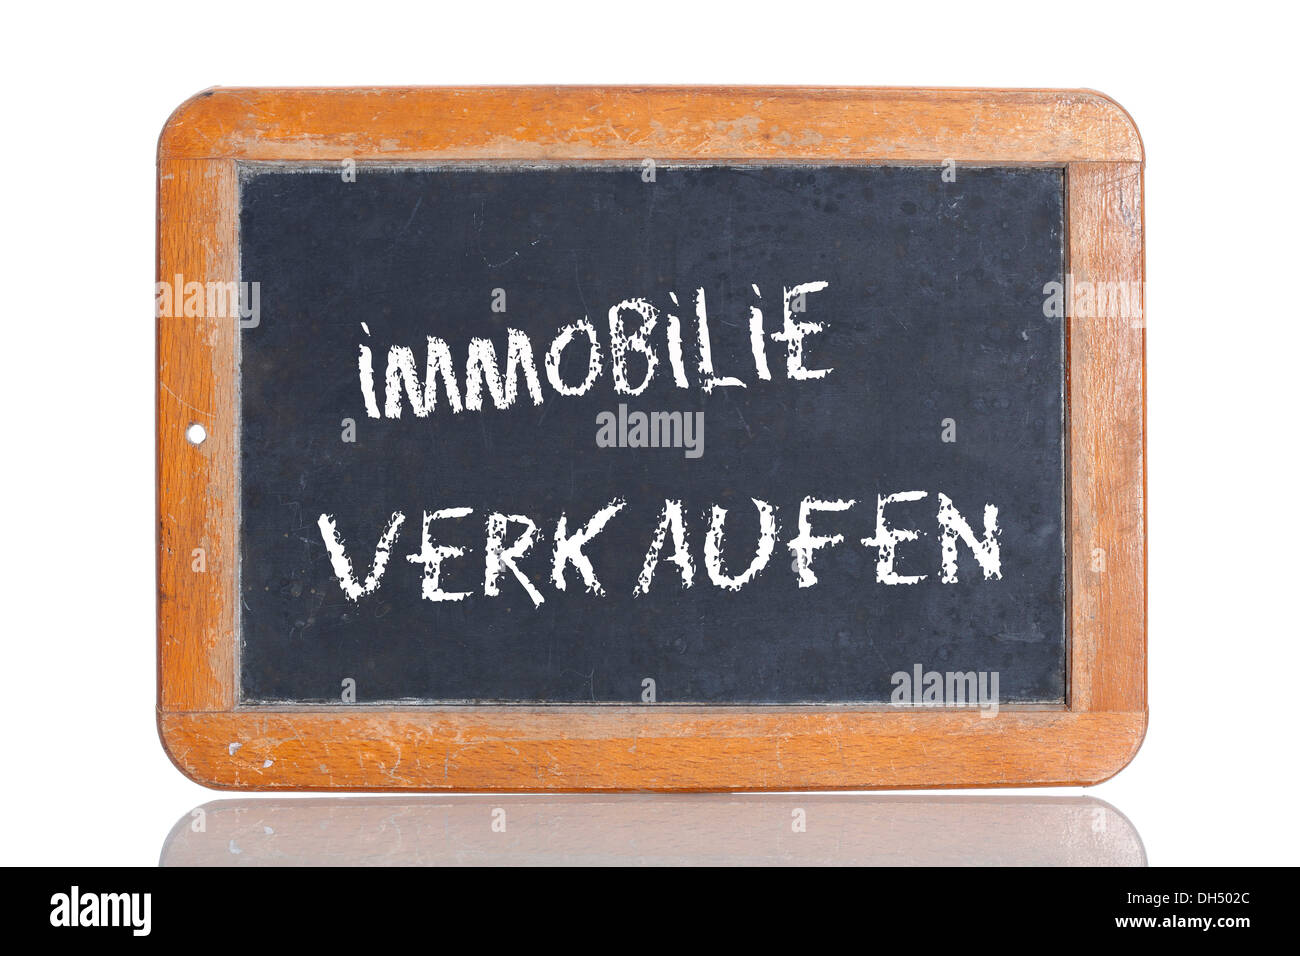 Old chalkboard, lettering 'IMMOBILIE VERKAUFEN', German for 'SELL A PROPERTY' - Stock Image